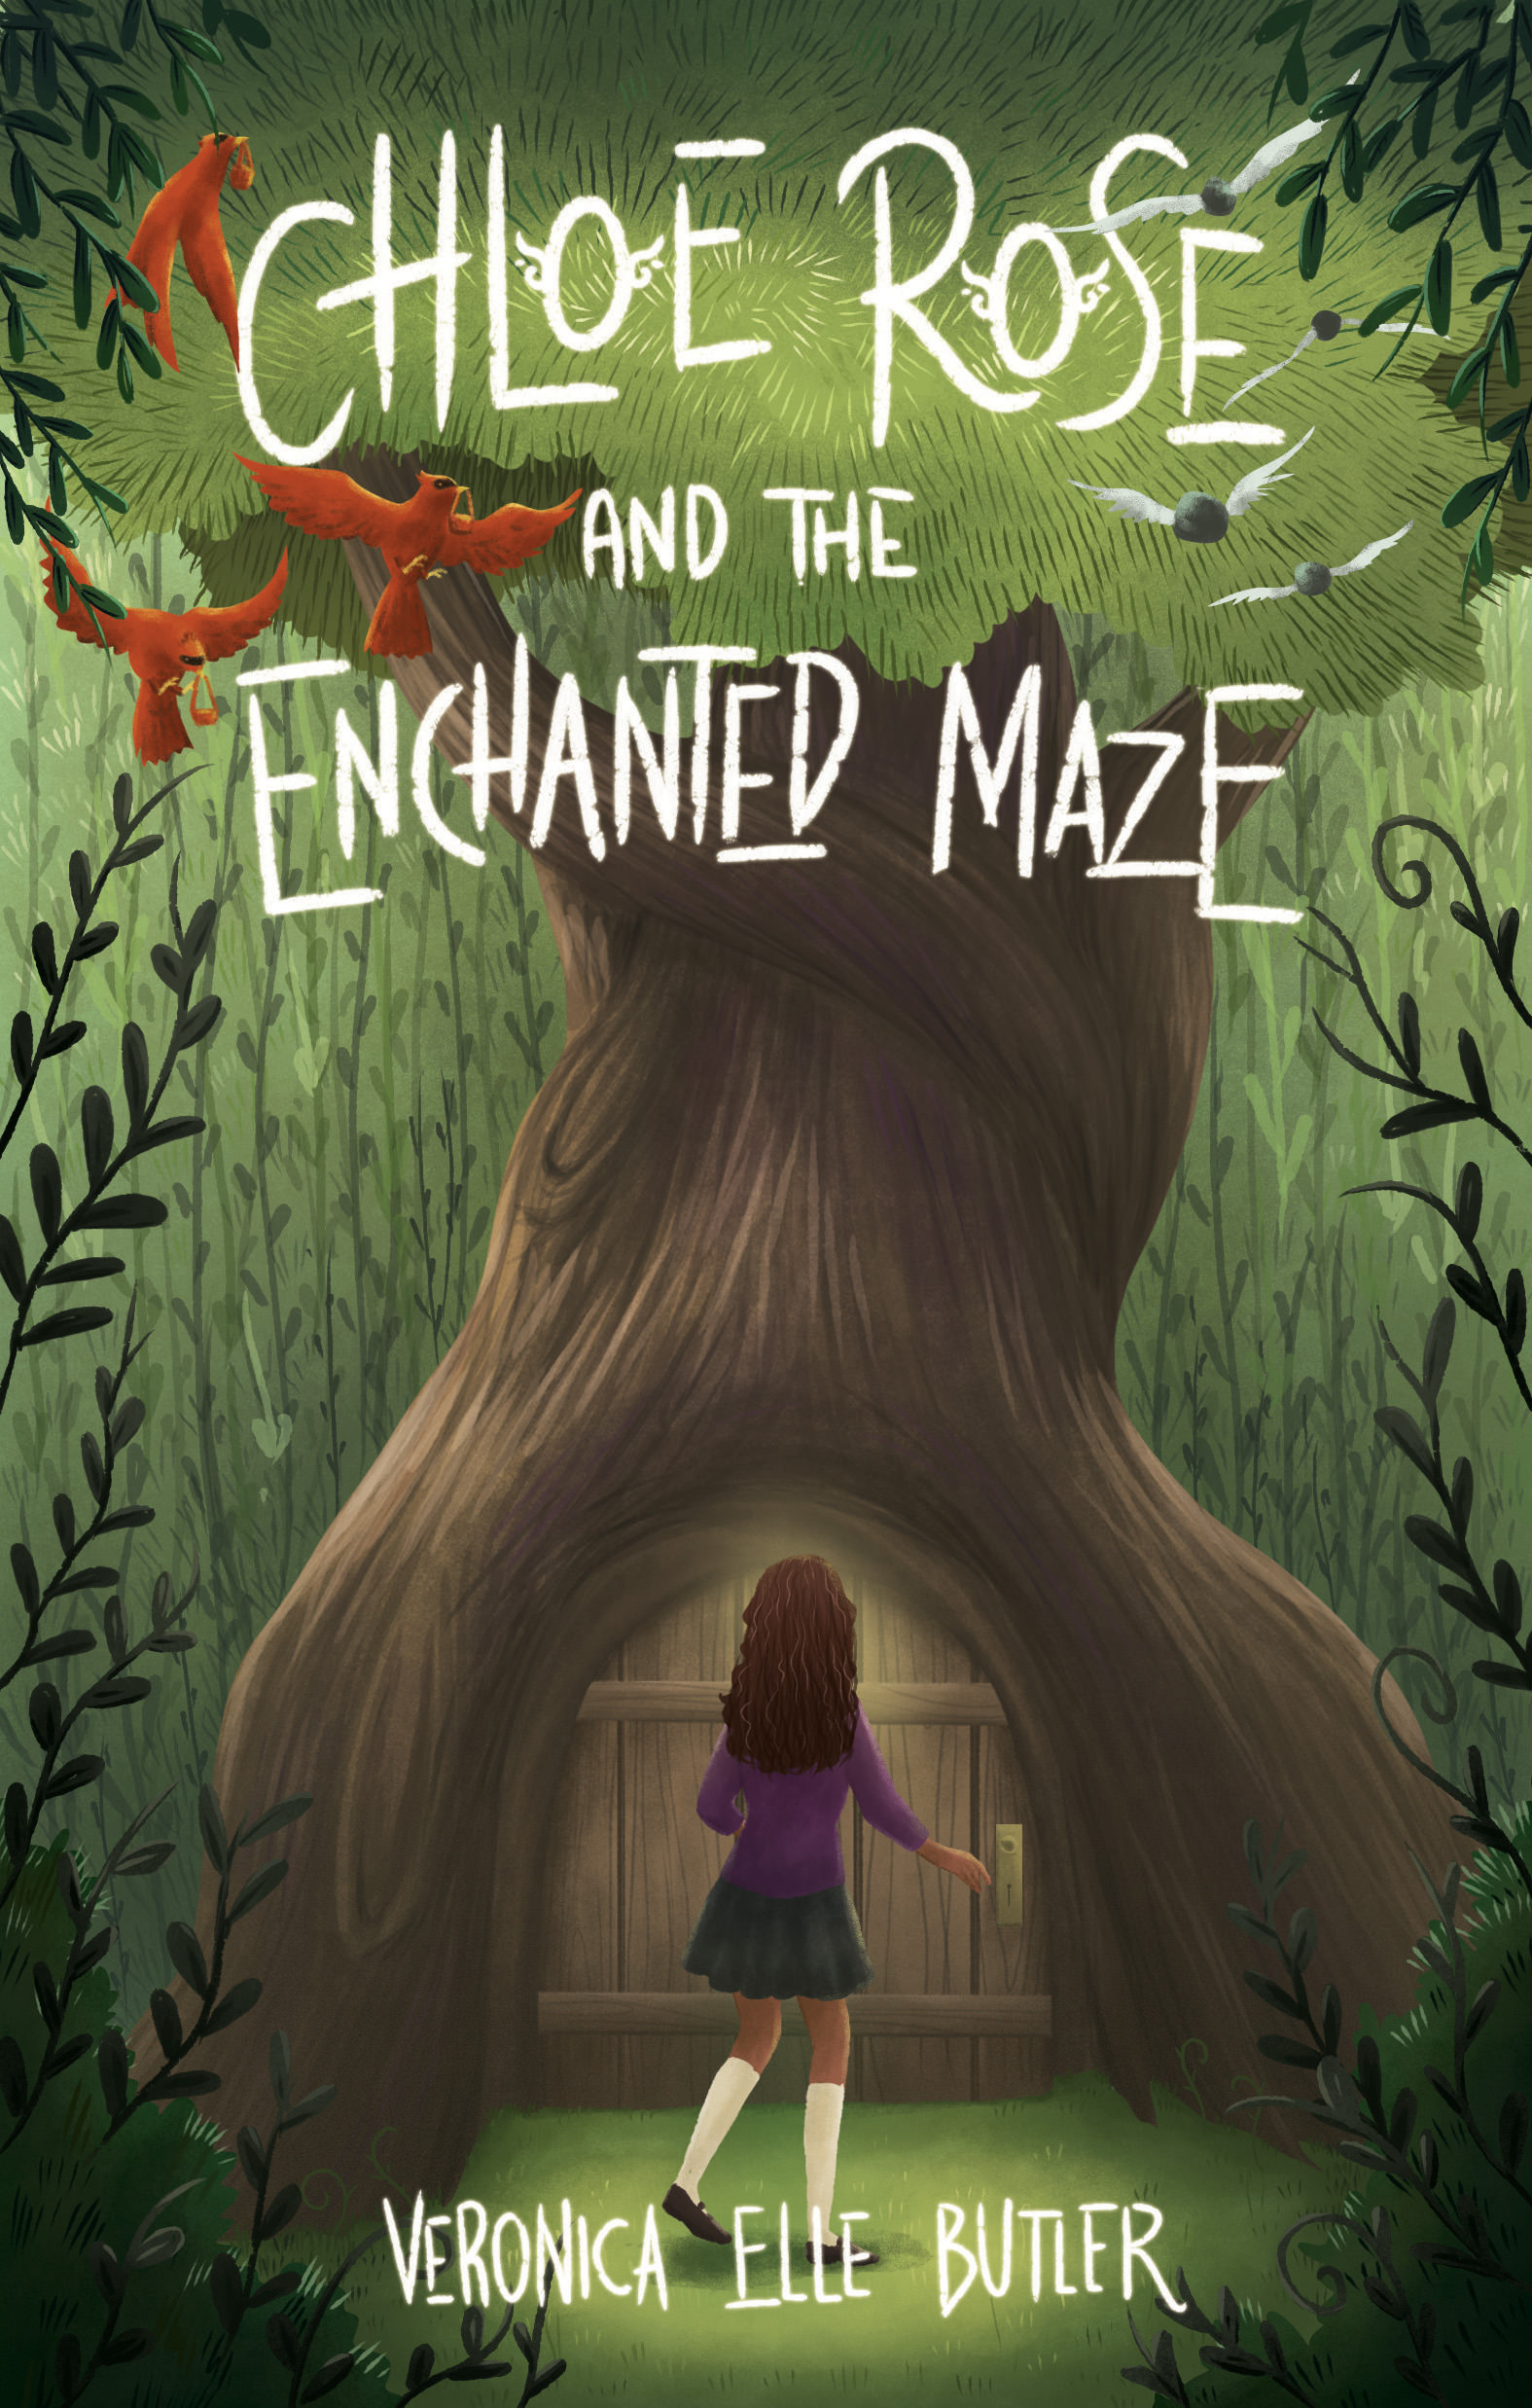 The cover of Chloe Rose and the Enchanted Maze, by Veronica Elle Butler